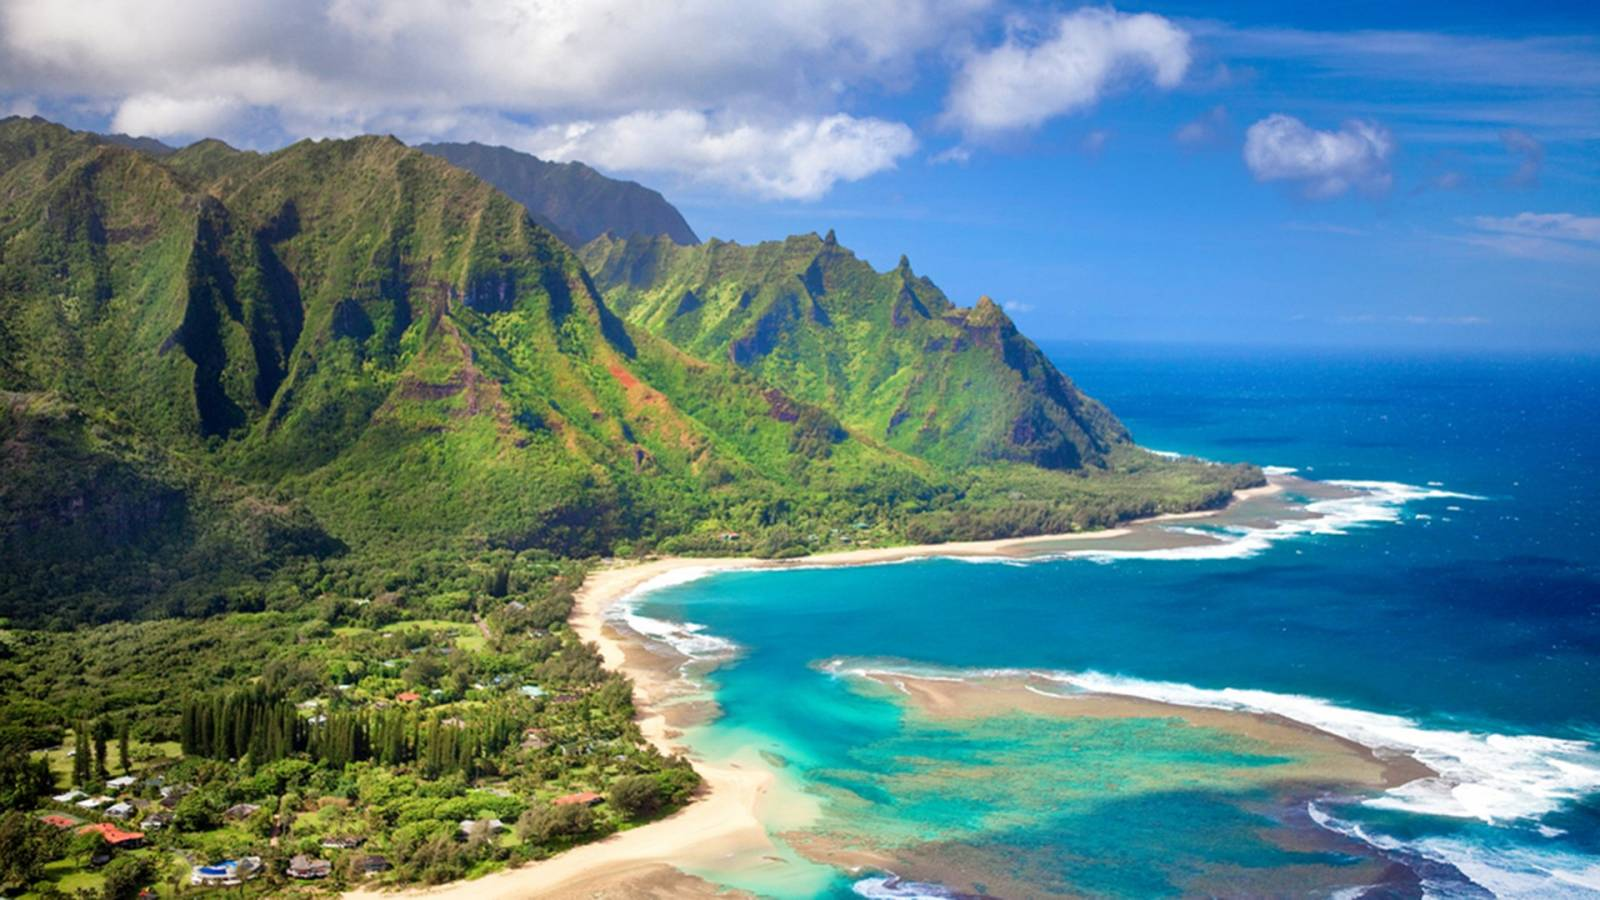 Canadian Buyer Guide to Purchasing Real Estate in Hawaii